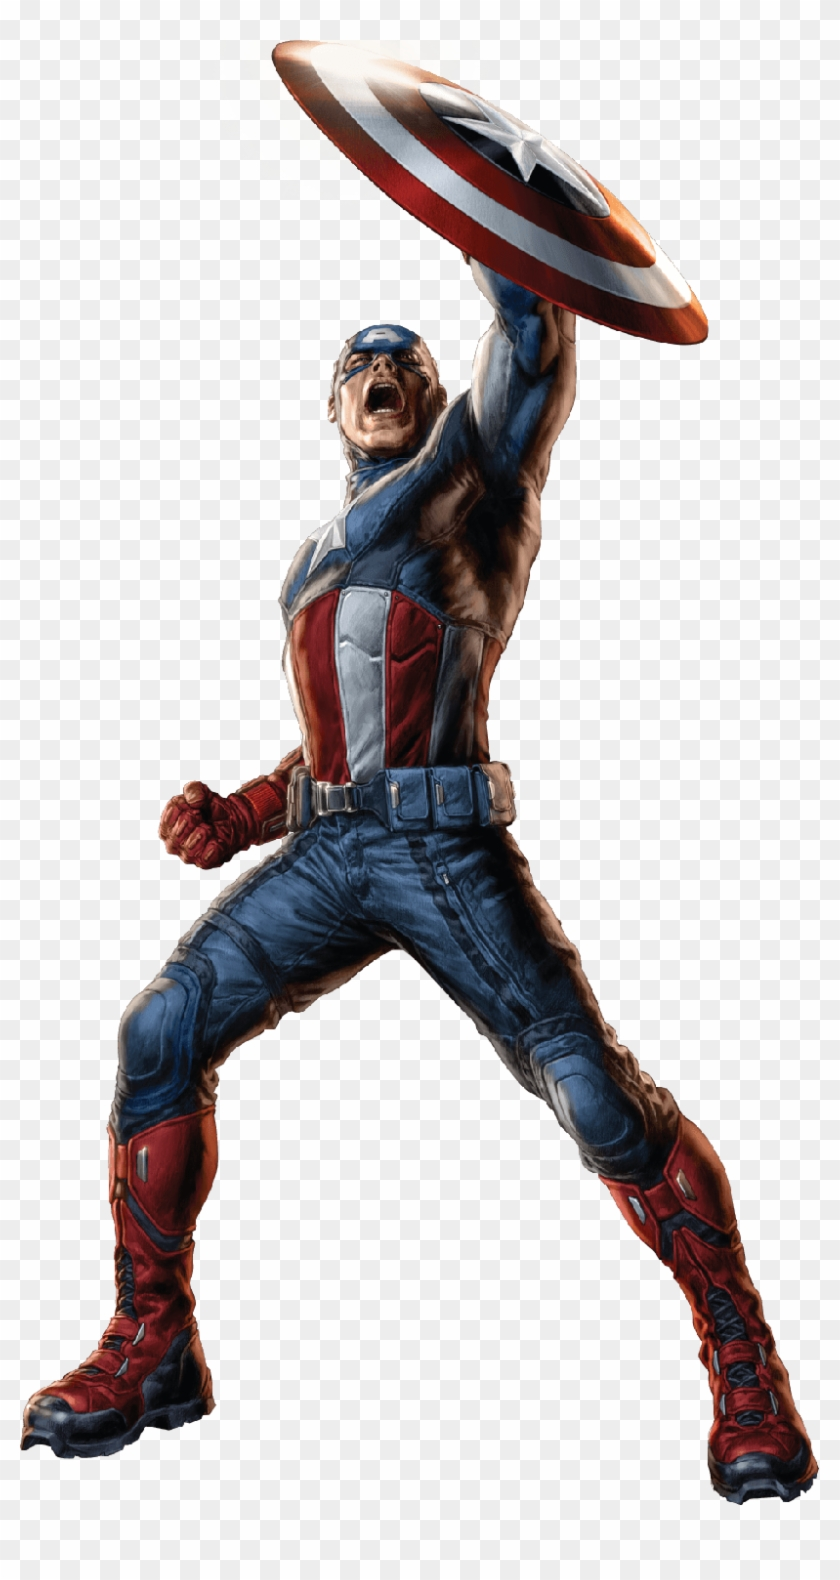 Captain America Shield Up Hd Png Download 819x1500 47407